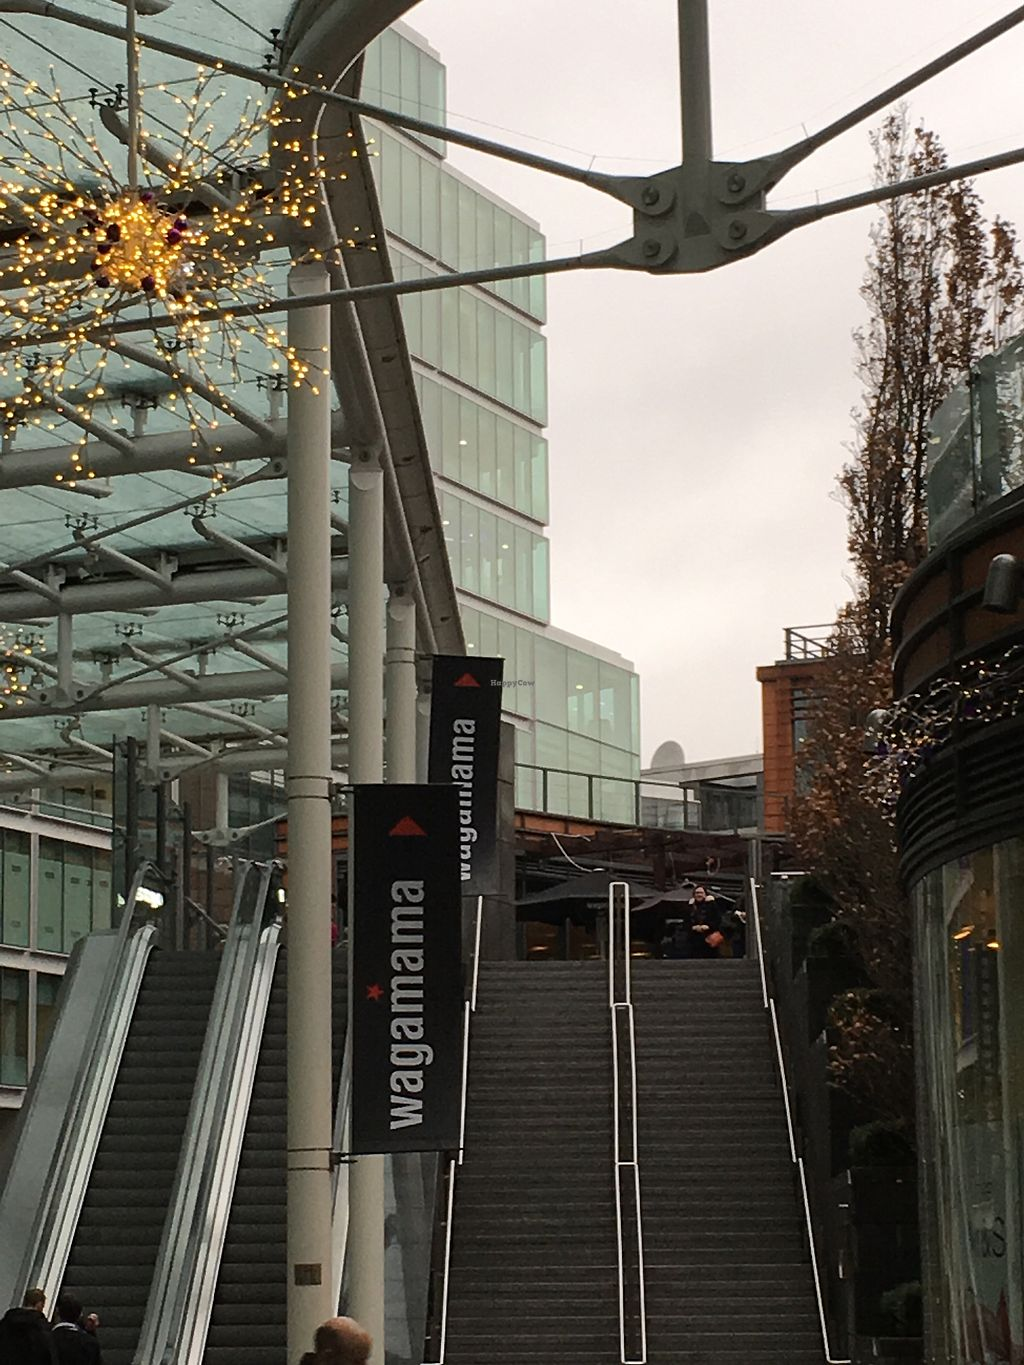 """Photo of Wagamama - Cardinal Place  by <a href=""""/members/profile/lysi"""">lysi</a> <br/>Restaurant is on level above the shopping centre  <br/> January 2, 2018  - <a href='/contact/abuse/image/107591/342076'>Report</a>"""